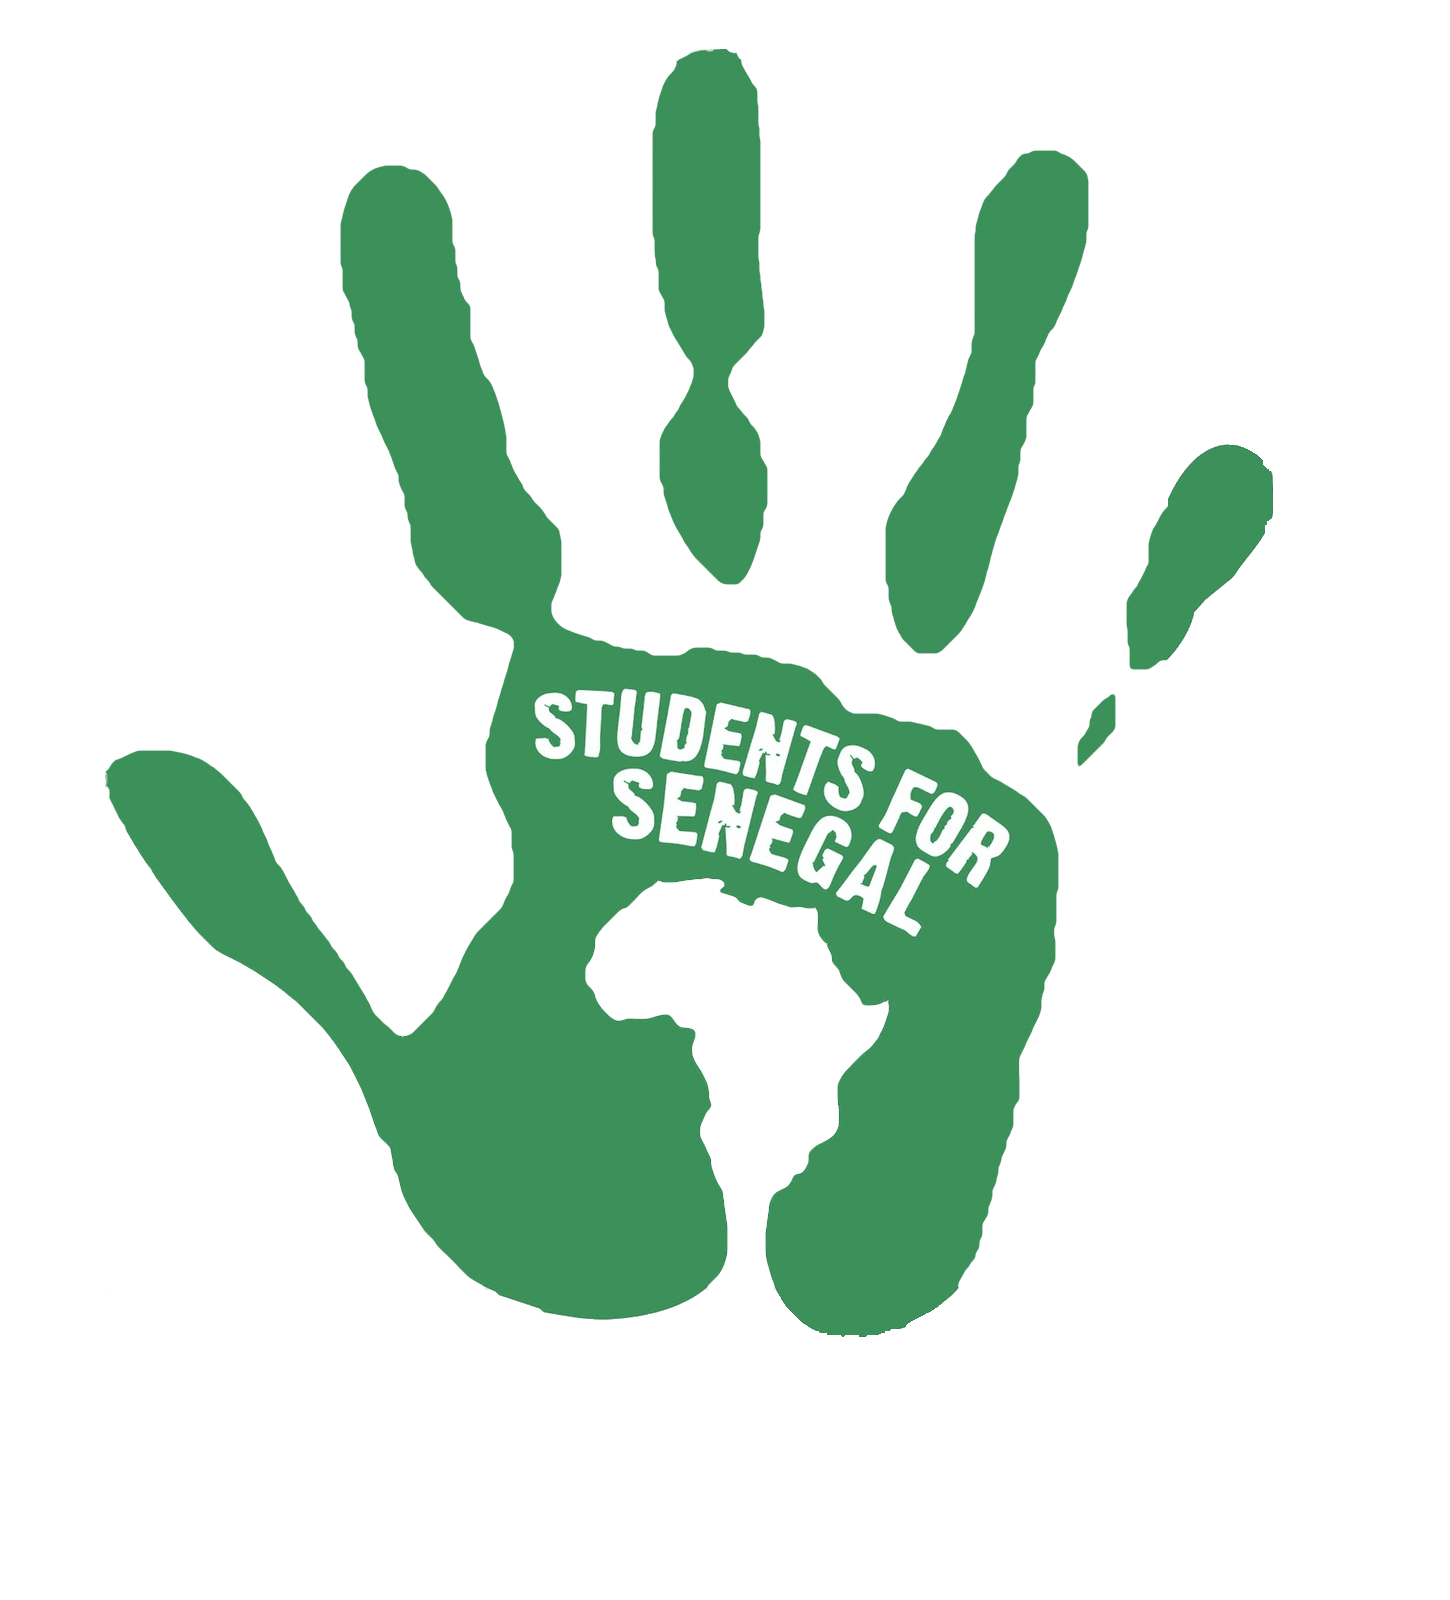 Students for Senegal